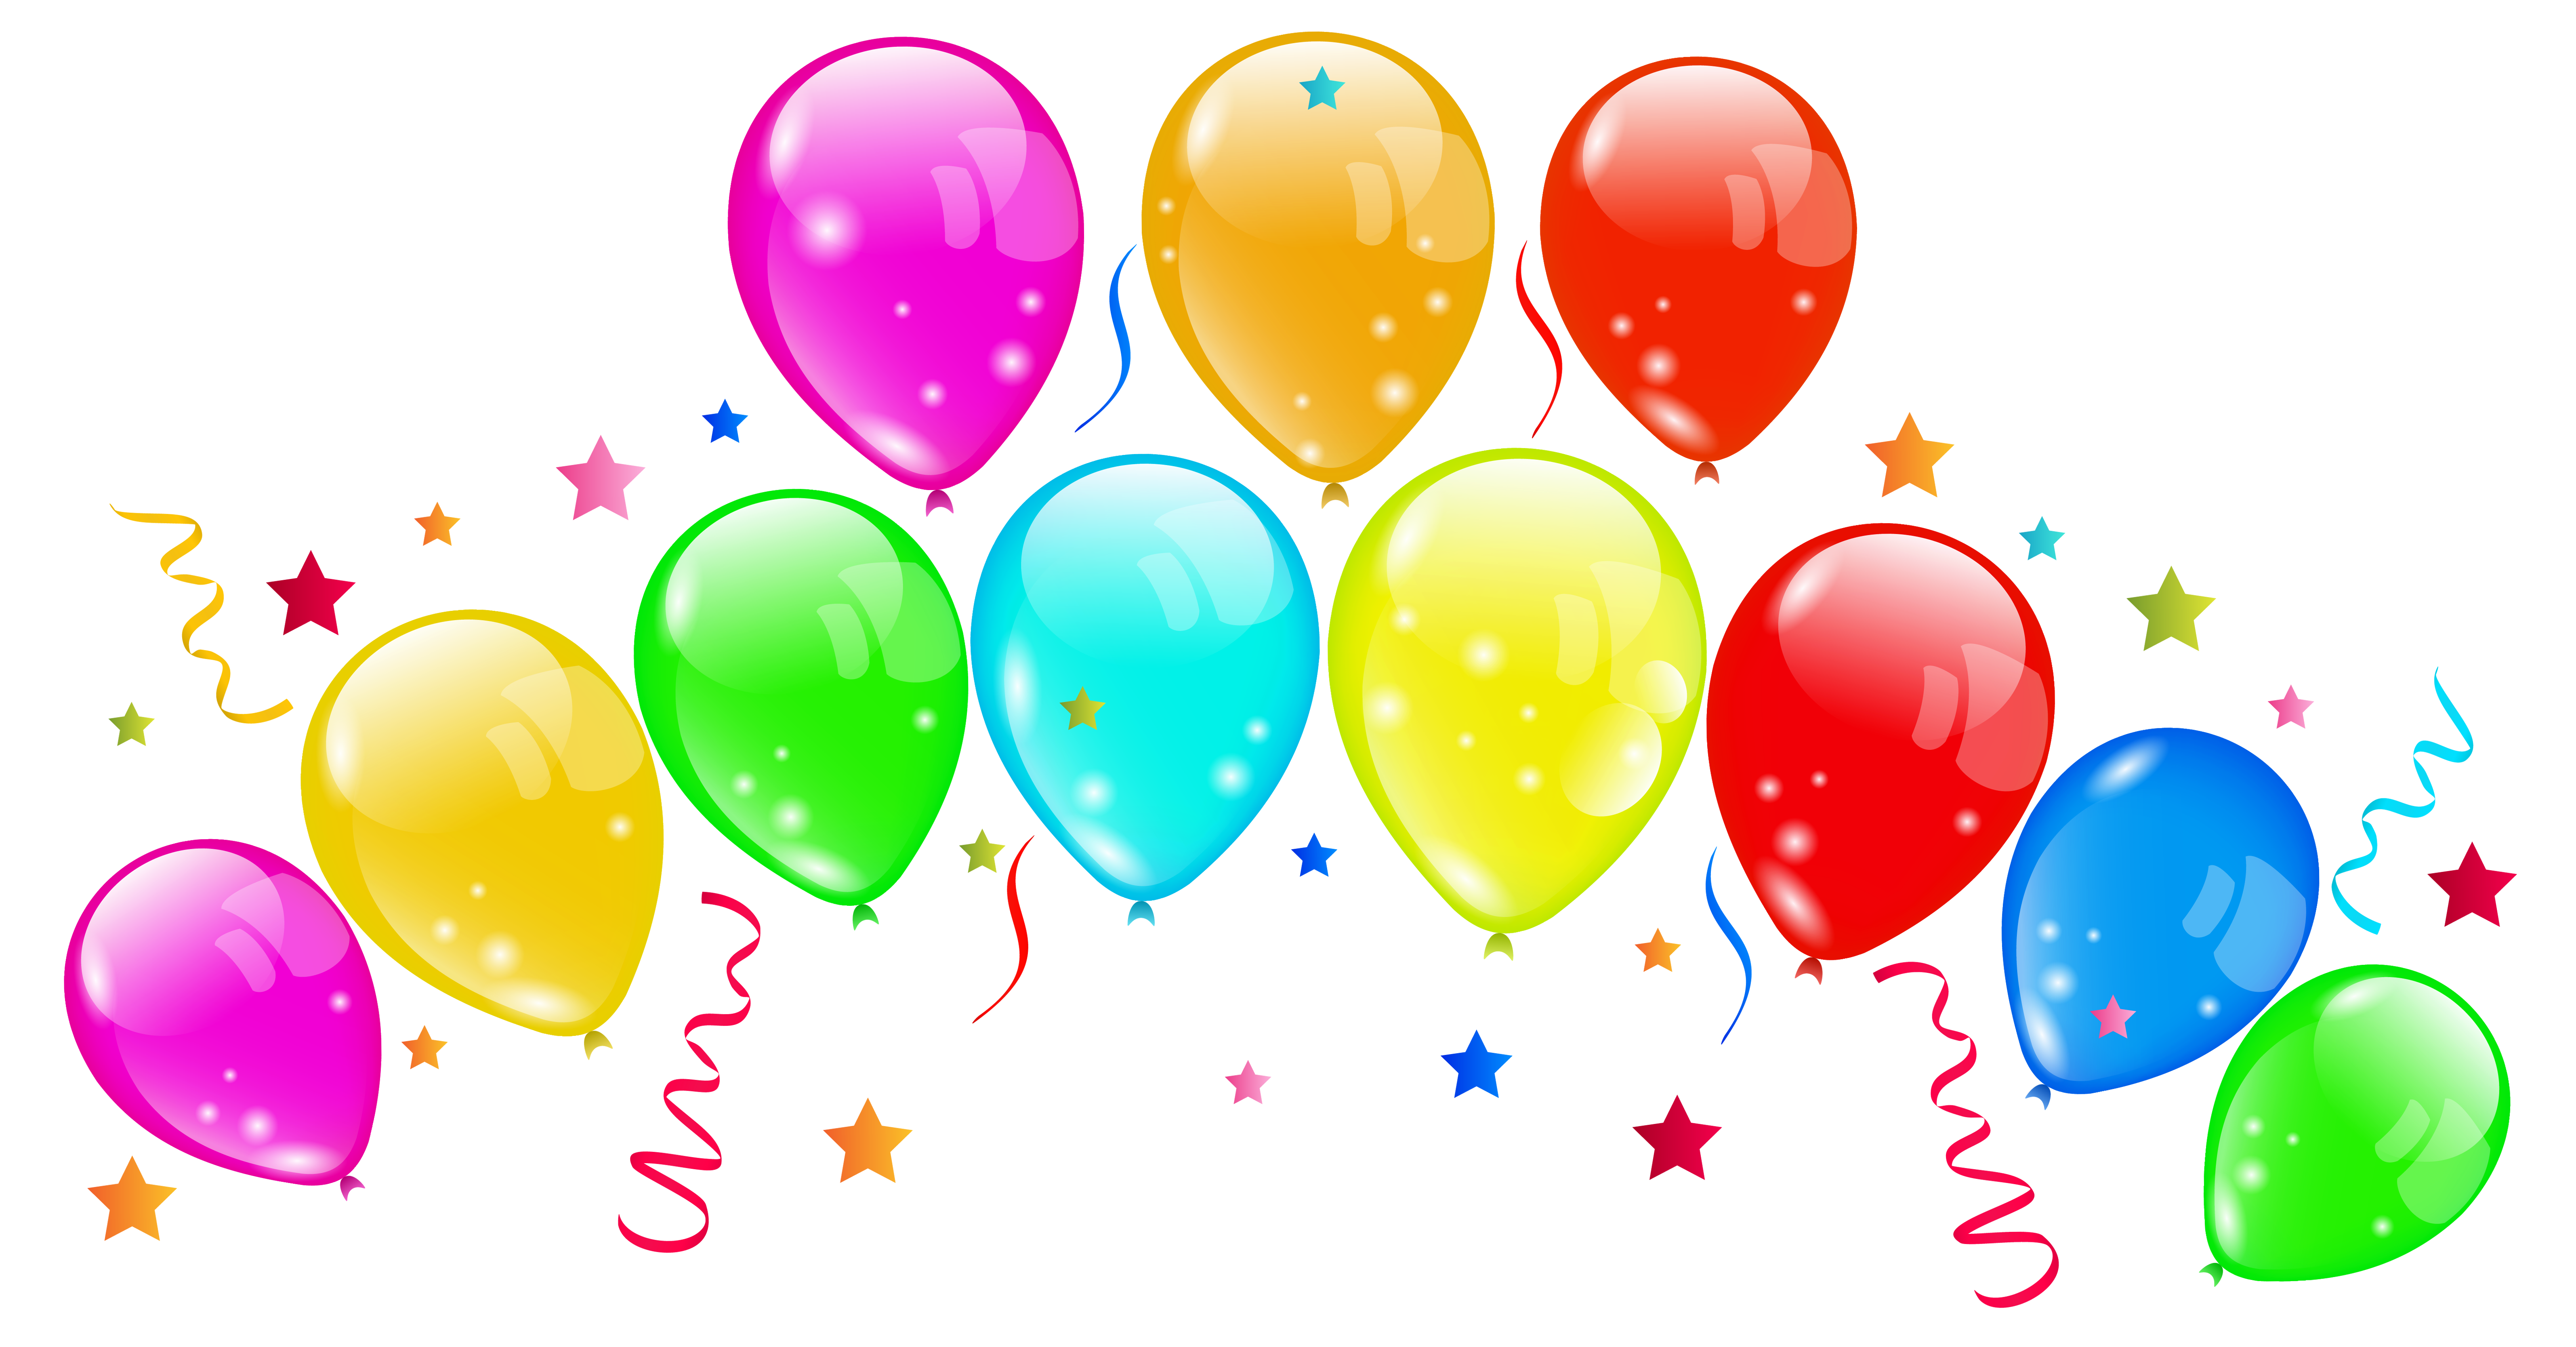 Balloon clipart png. Decorative balloons image gallery